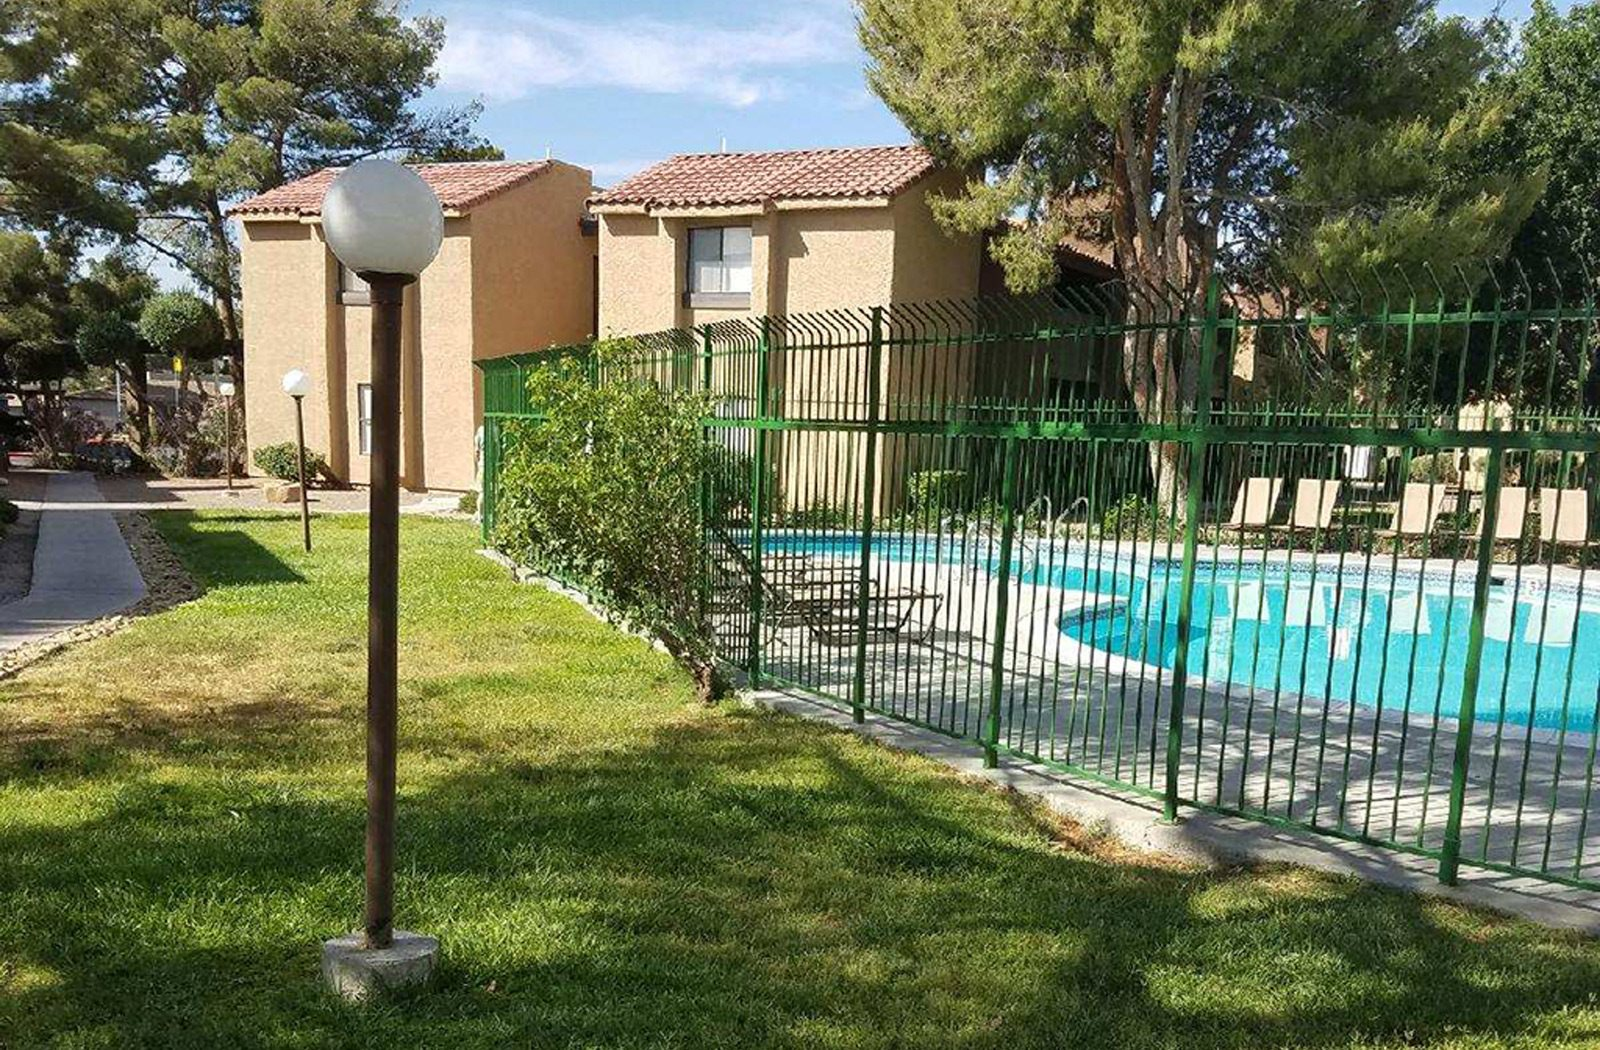 Swimming Pool and walking path near apartment buildings